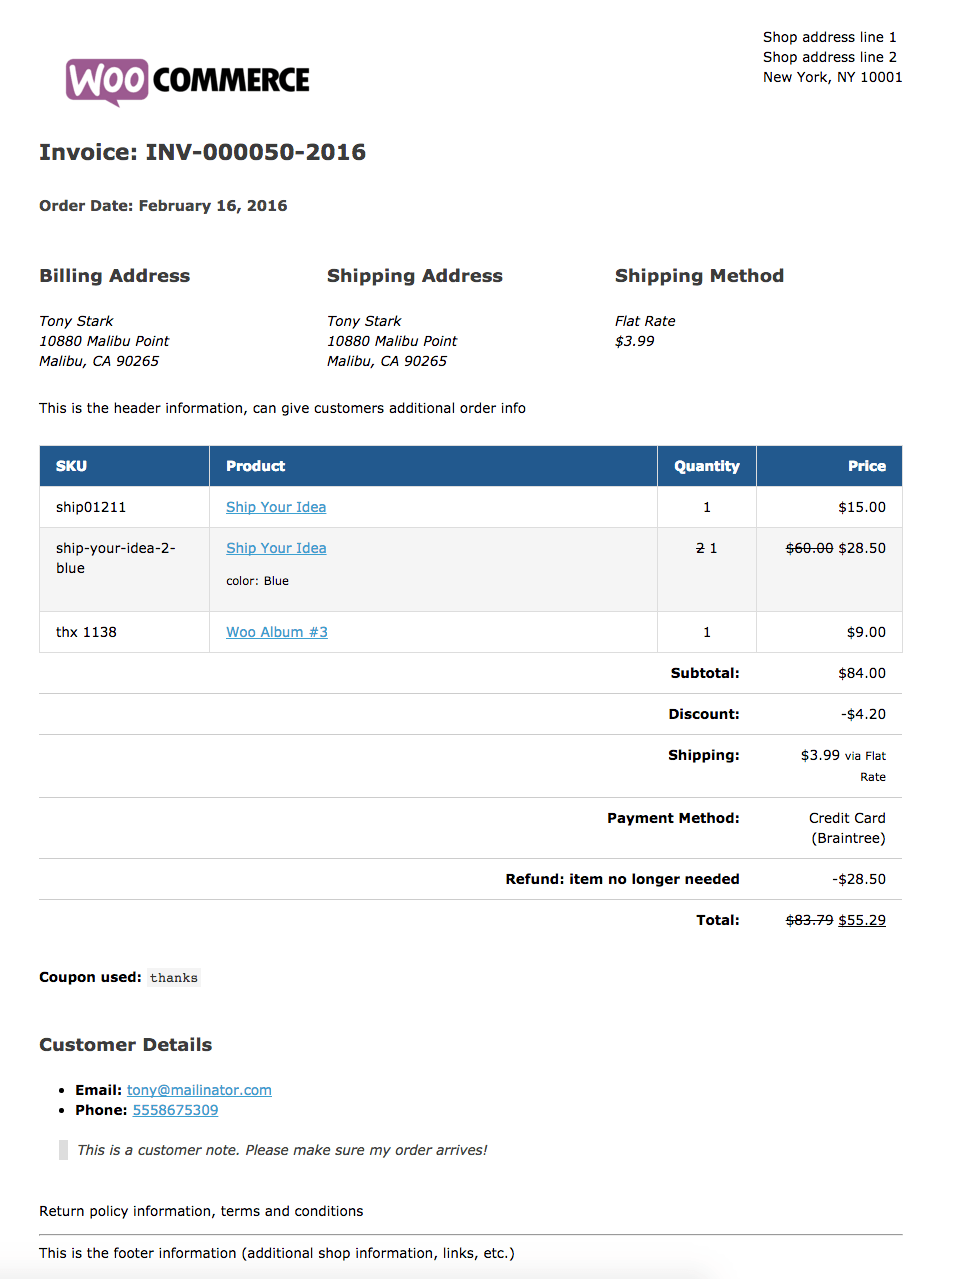 Floobydustus  Winning Print Invoices Amp Packing Lists  Woocommerce With Fair View A Sample Invoice  With Amusing Massage Receipt Template Also Receipt Template Free Printable In Addition Babies R Us Receipt And Taxi Receipt Sample As Well As Cookie Receipts Additionally Receipt Format Template From Woocommercecom With Floobydustus  Fair Print Invoices Amp Packing Lists  Woocommerce With Amusing View A Sample Invoice  And Winning Massage Receipt Template Also Receipt Template Free Printable In Addition Babies R Us Receipt From Woocommercecom